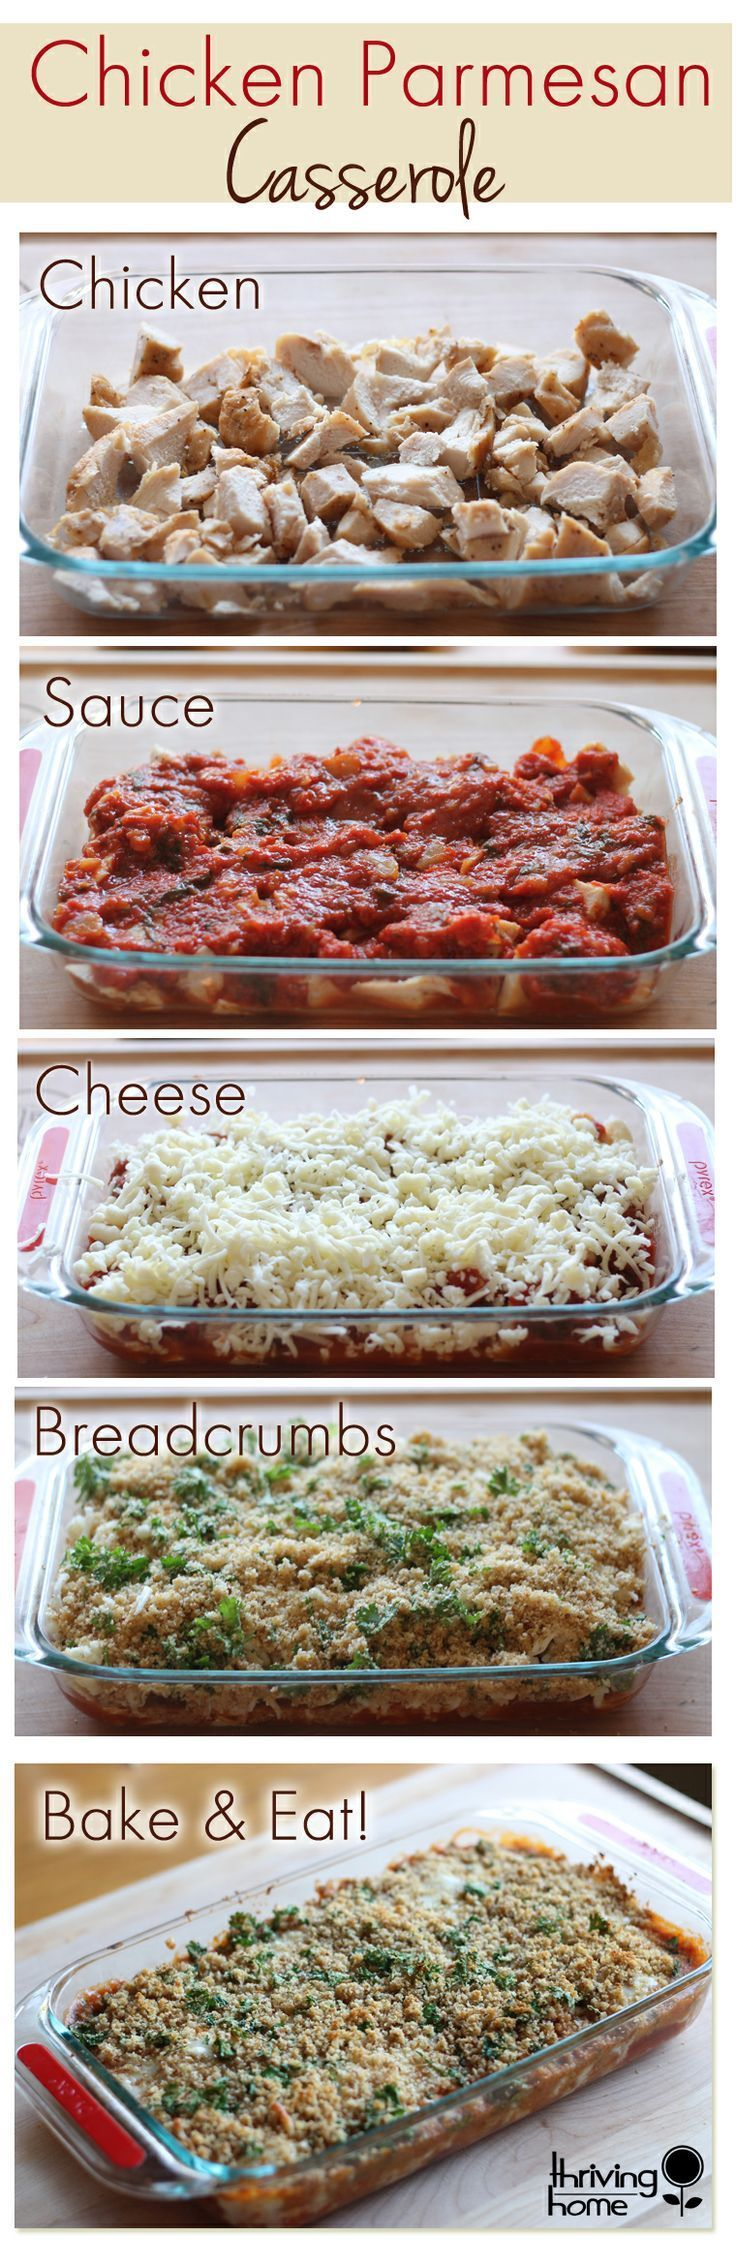 Chicken Parmesan Casserole Recipe cheese baking recipe recipes dinner dinner recipes chicken food tutorials